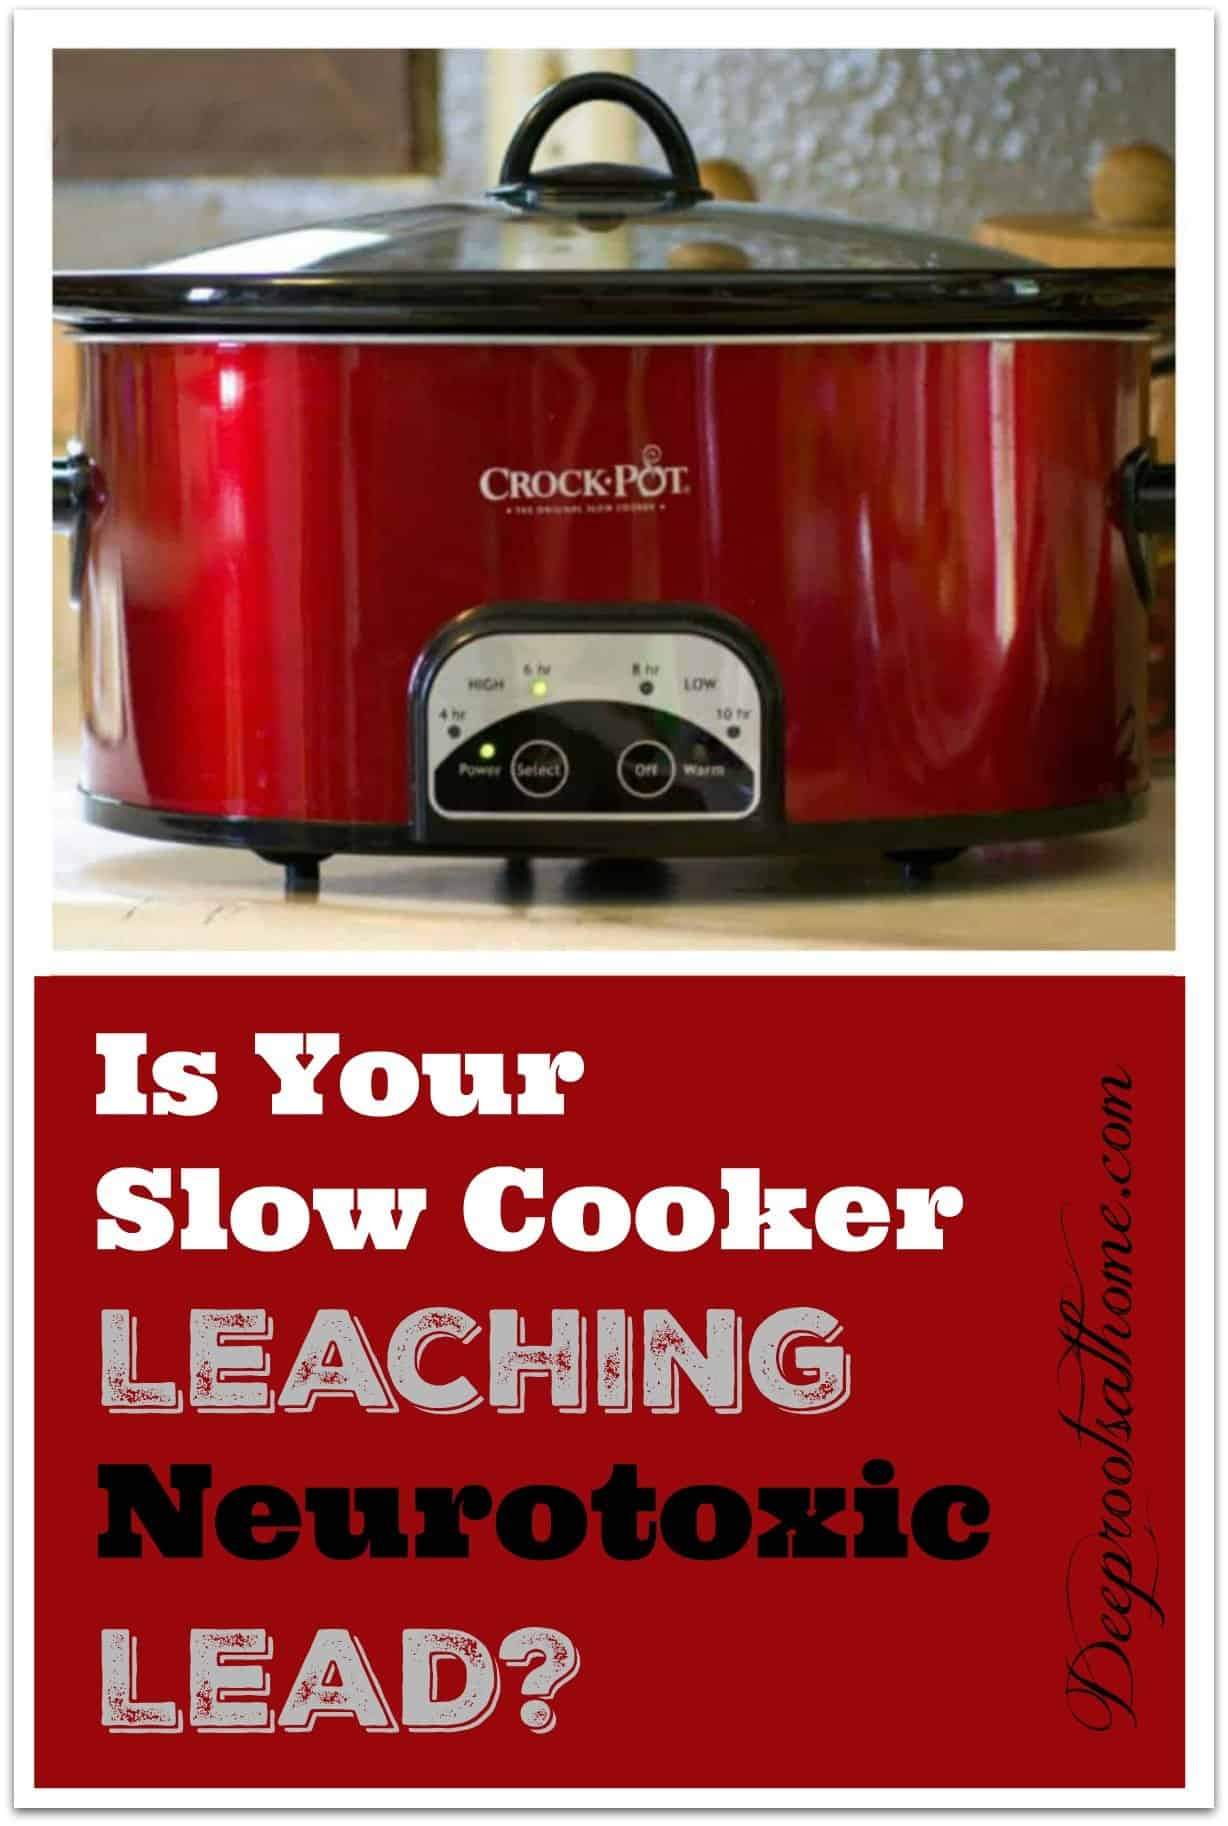 Could Your Slow Cooker Be Leaching Neurotoxic Lead? A red Crock Pot